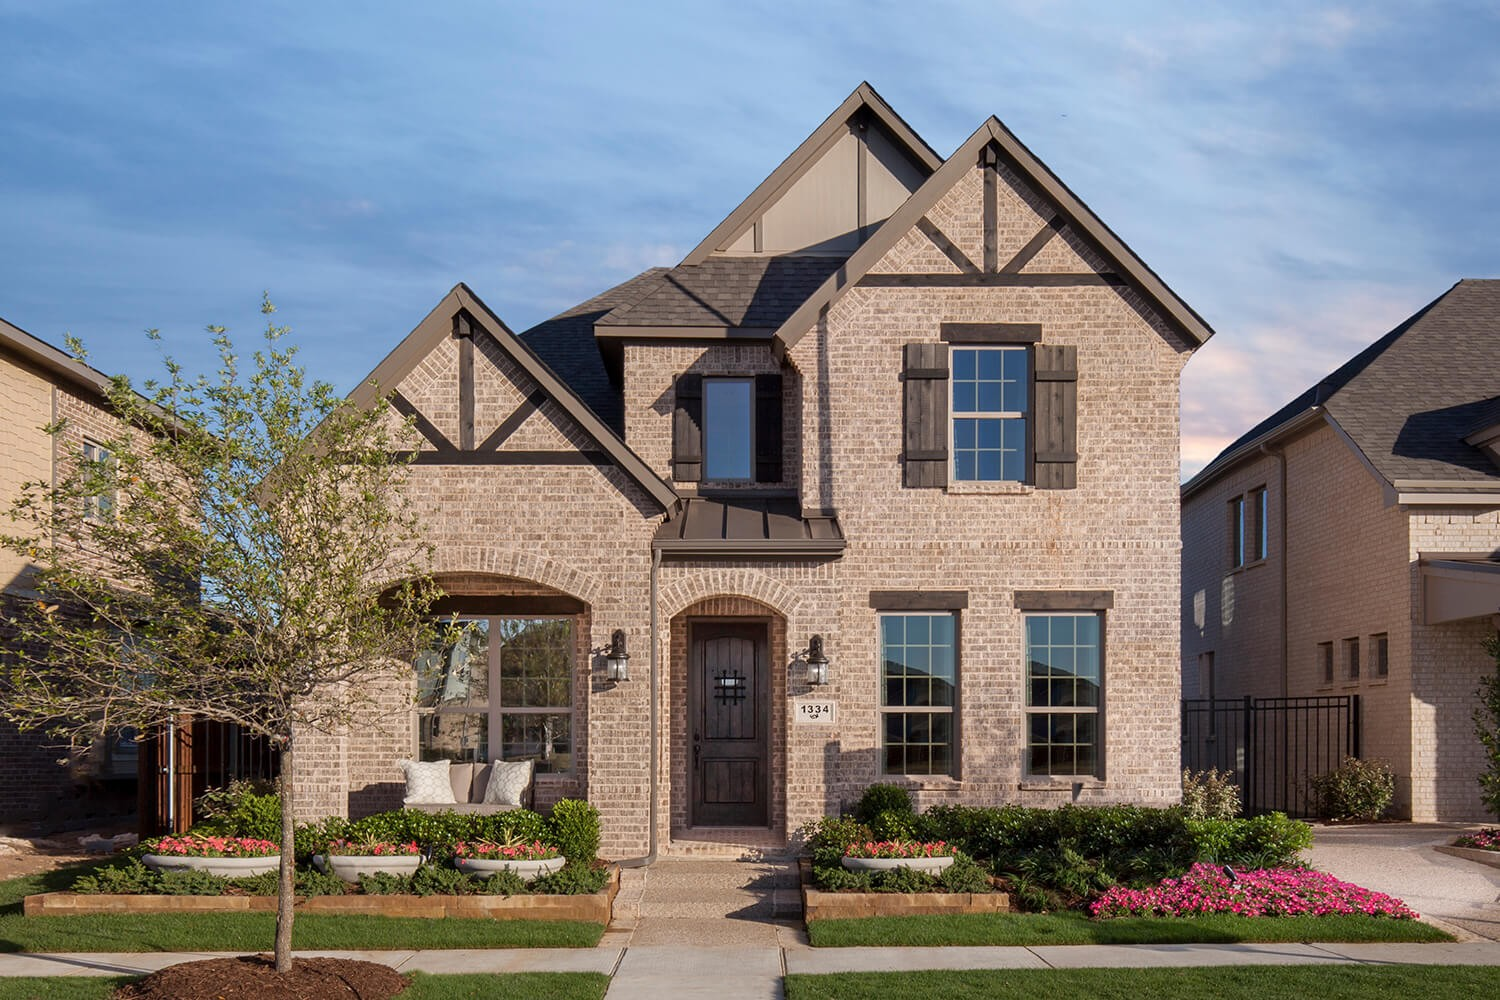 New Homes For Sale In Arlington,tx